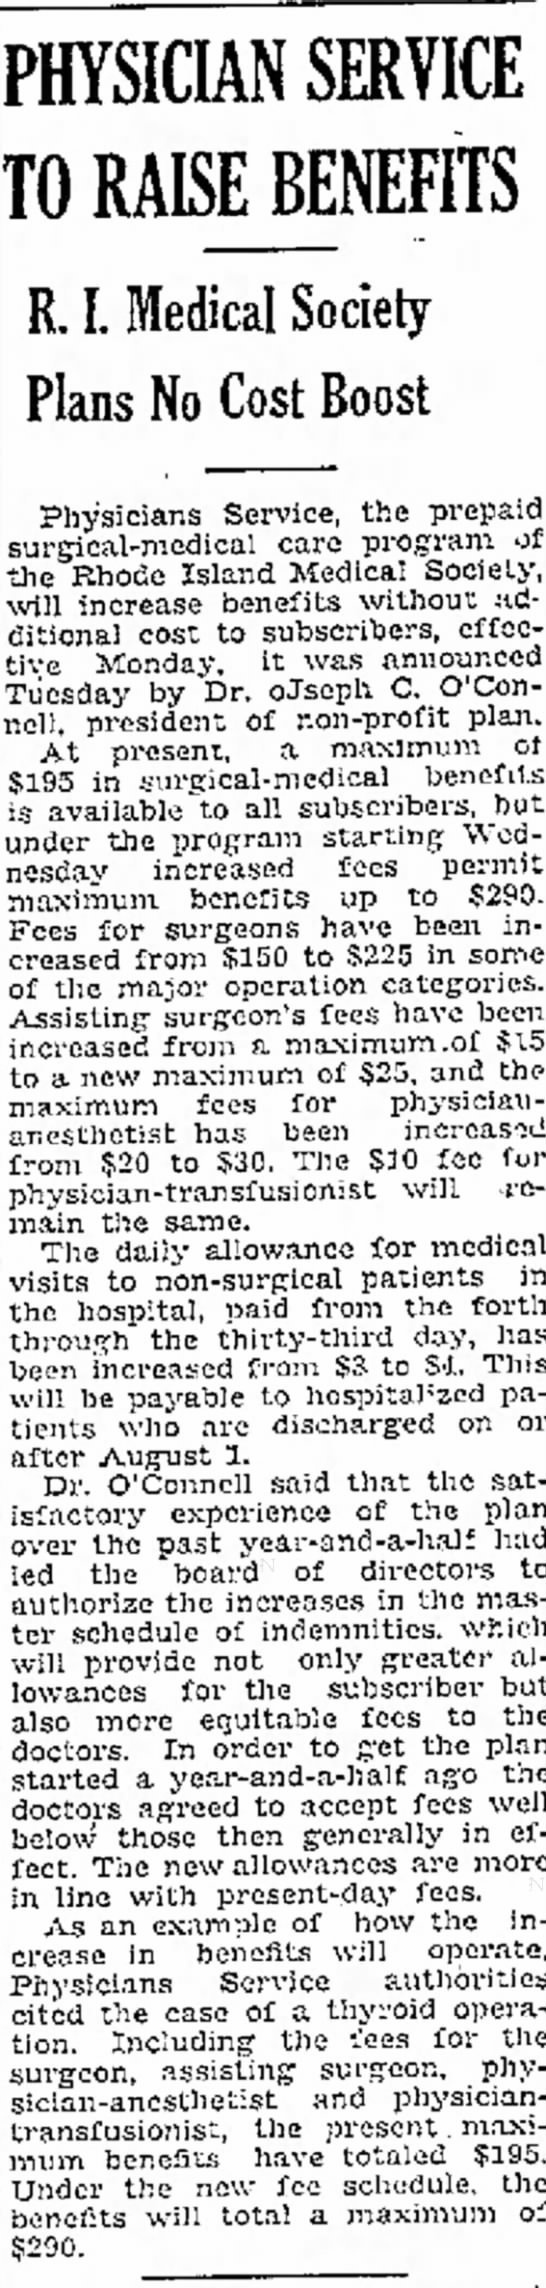 The Newport Mercury and Weekly News August 3, 1951 -